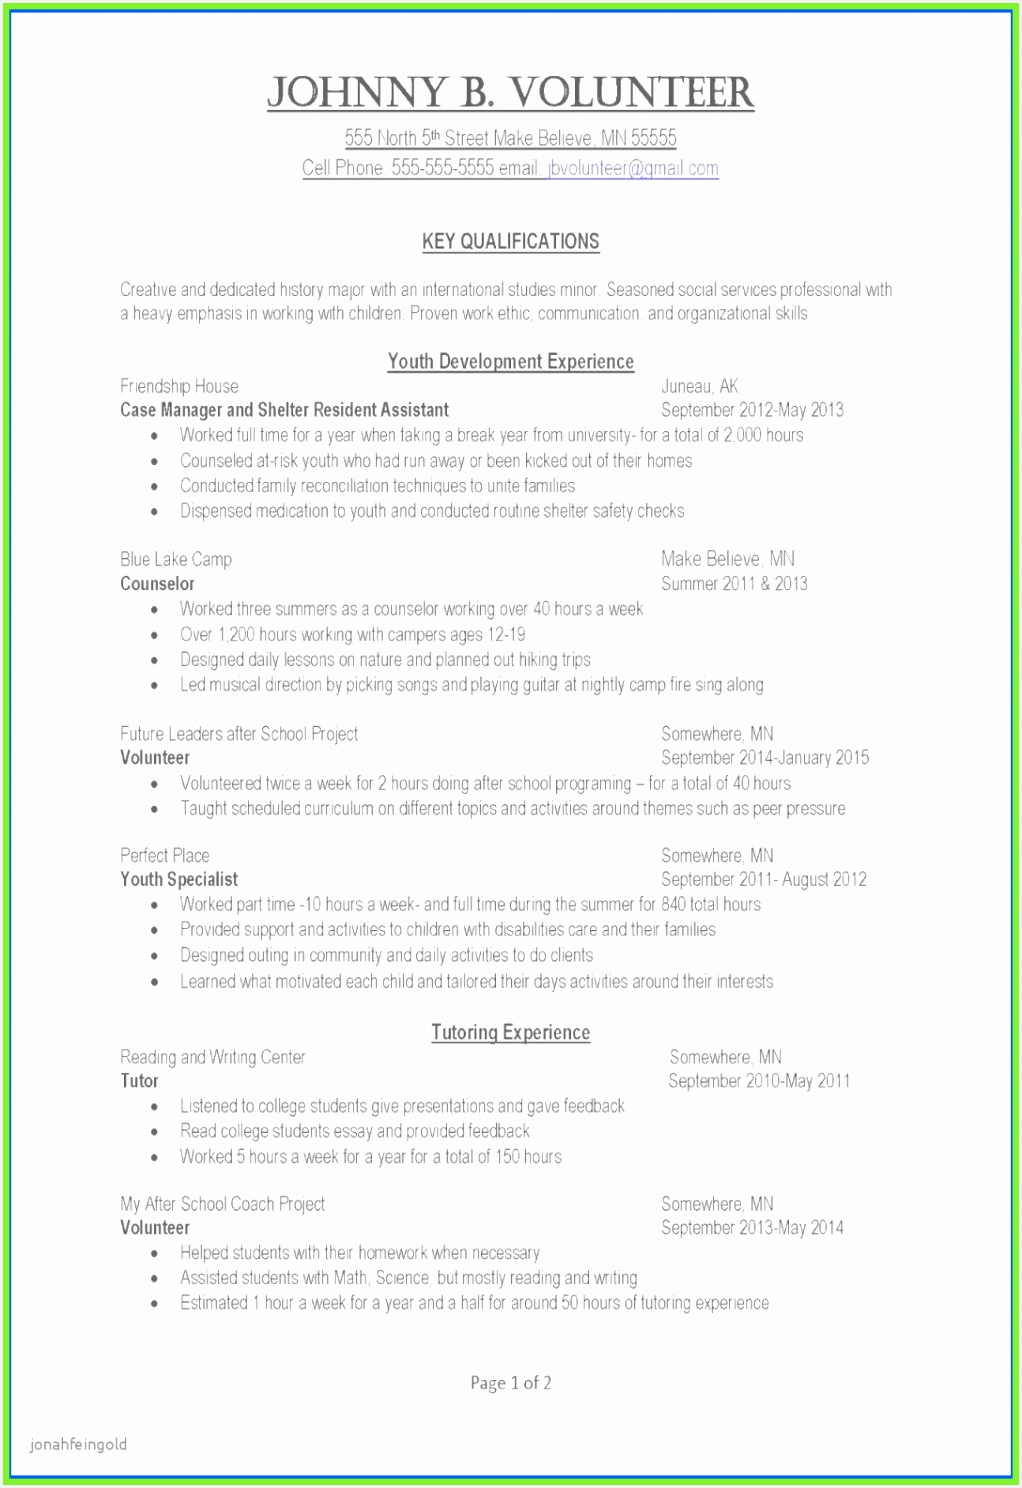 International social Worker Sample Resume Bnede Beautiful 16 Inspirational Student Cover Letter Template Of International social Worker Sample Resume Xdcnj Unique Customer Service Resume Objective Examples Inspirational Resume